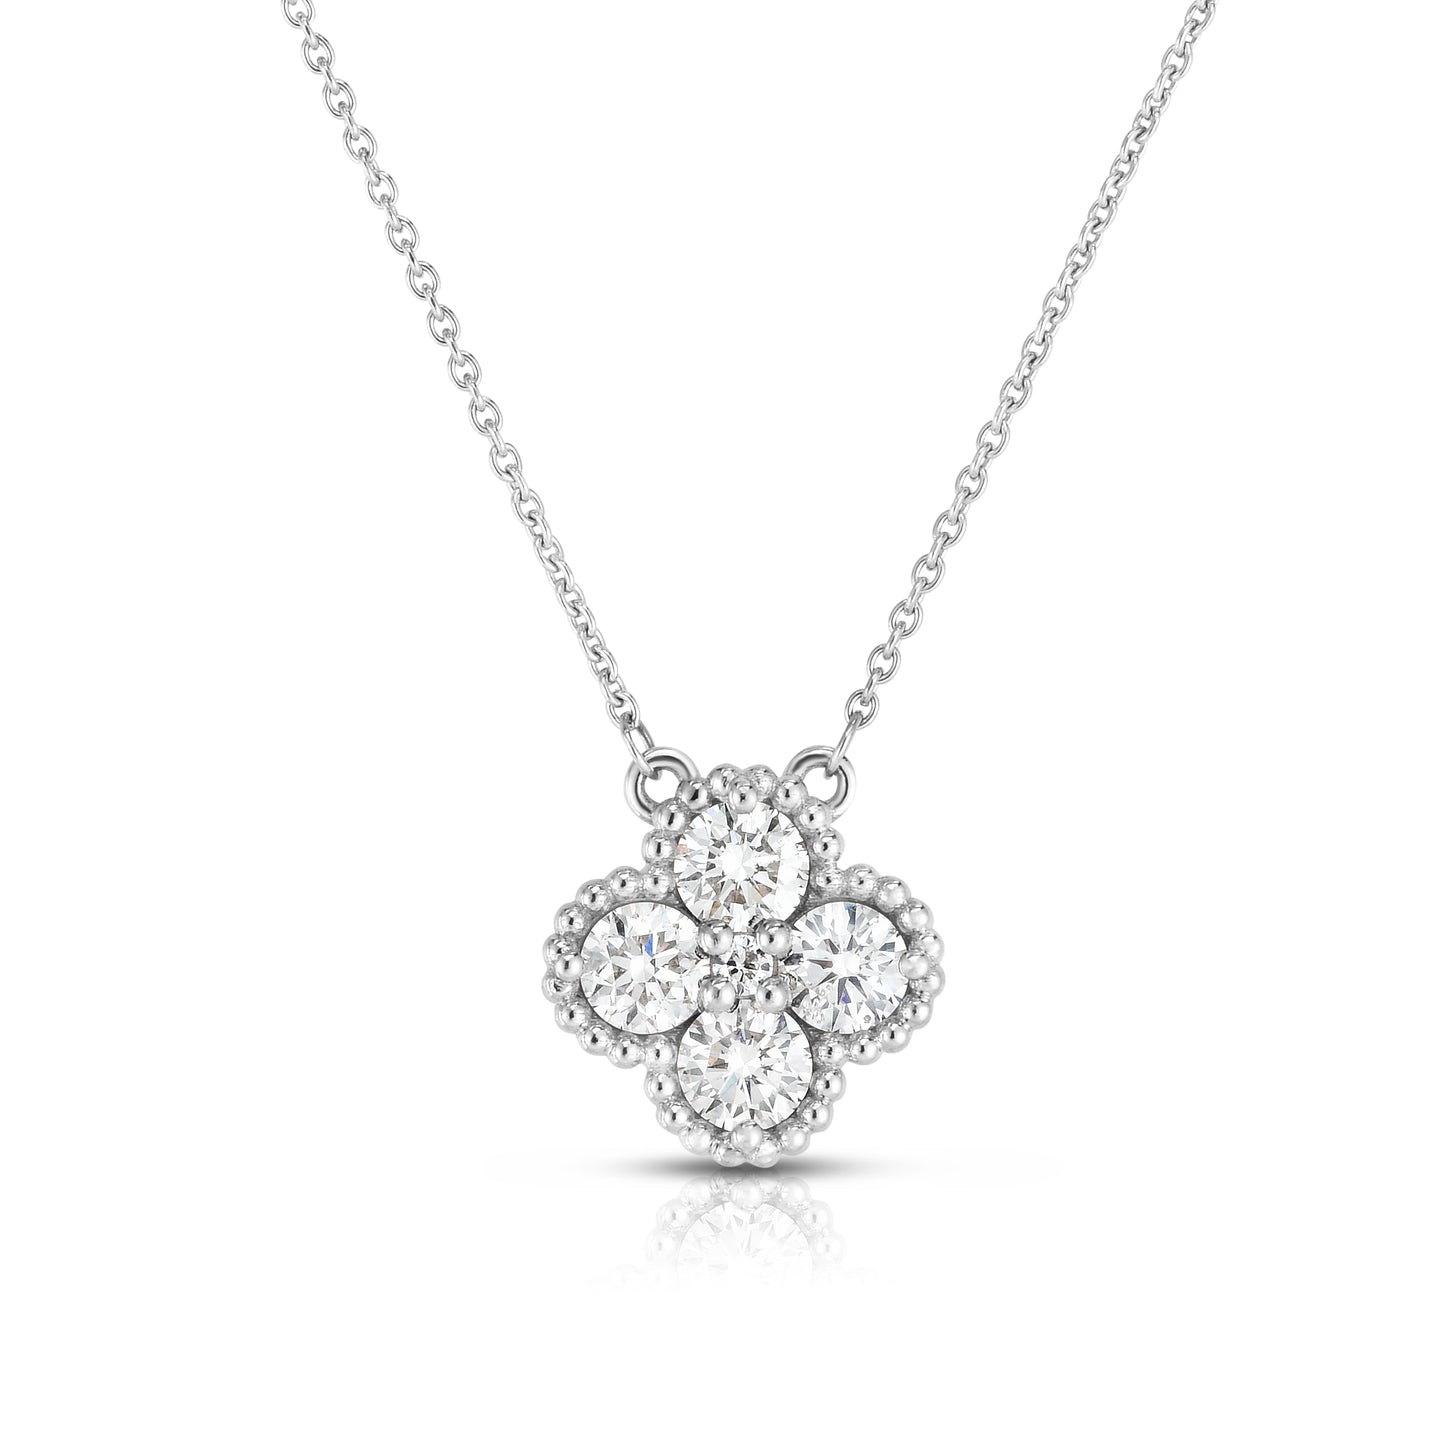 Sabel Collection 14K White Gold Round Diamond Clover Necklace with Milgrain Accents